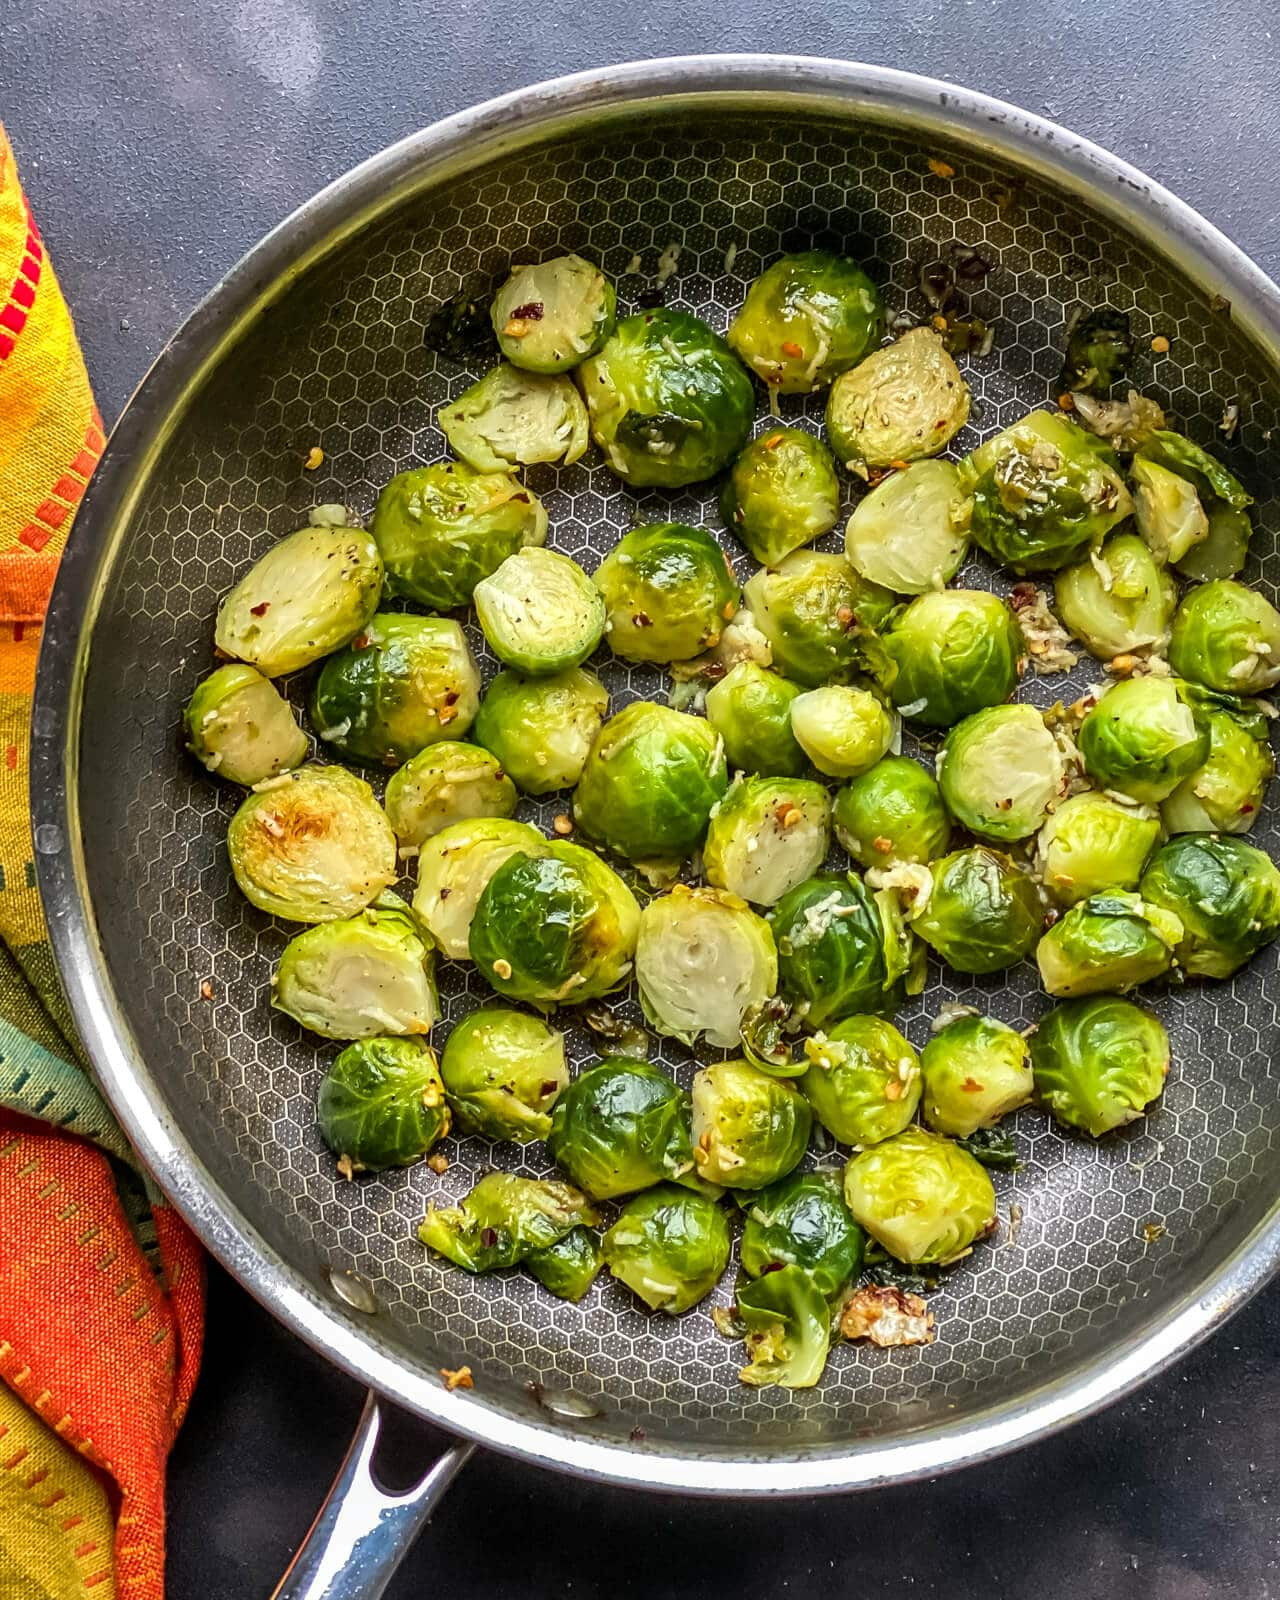 A silver pan of pan fried steamed Brussel sprouts on a grey counter with an orange and yellow towel to the left.